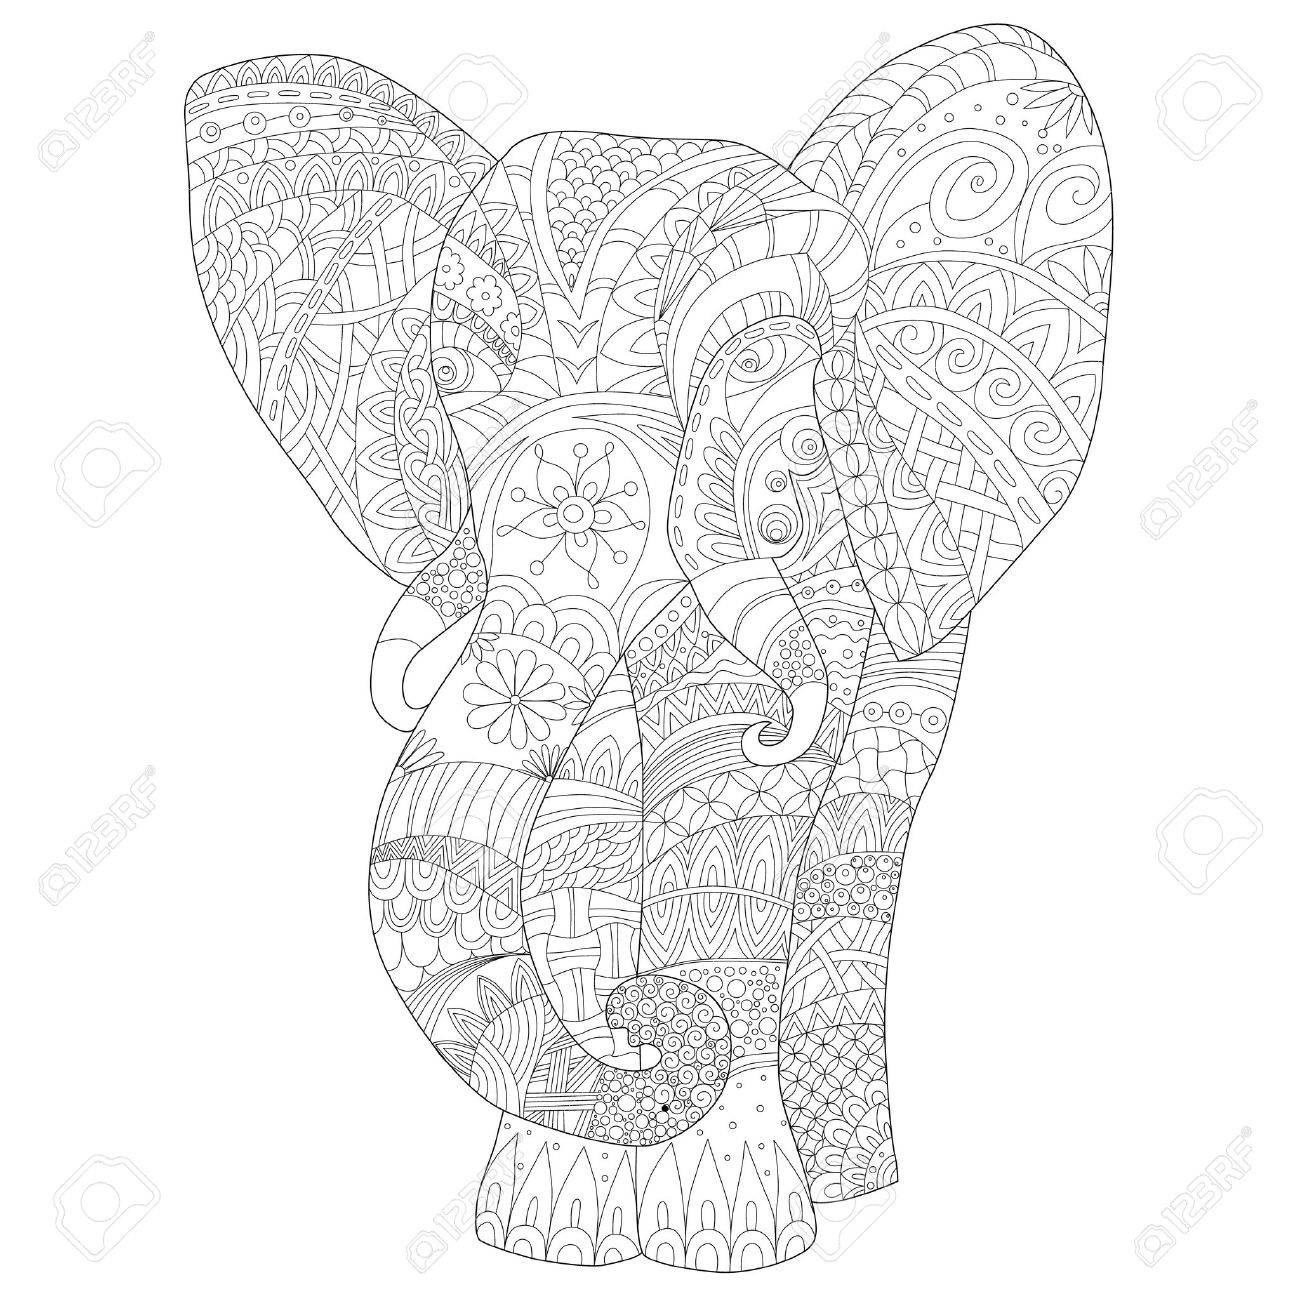 page coloring for adults hand drawn elephant zentangl style